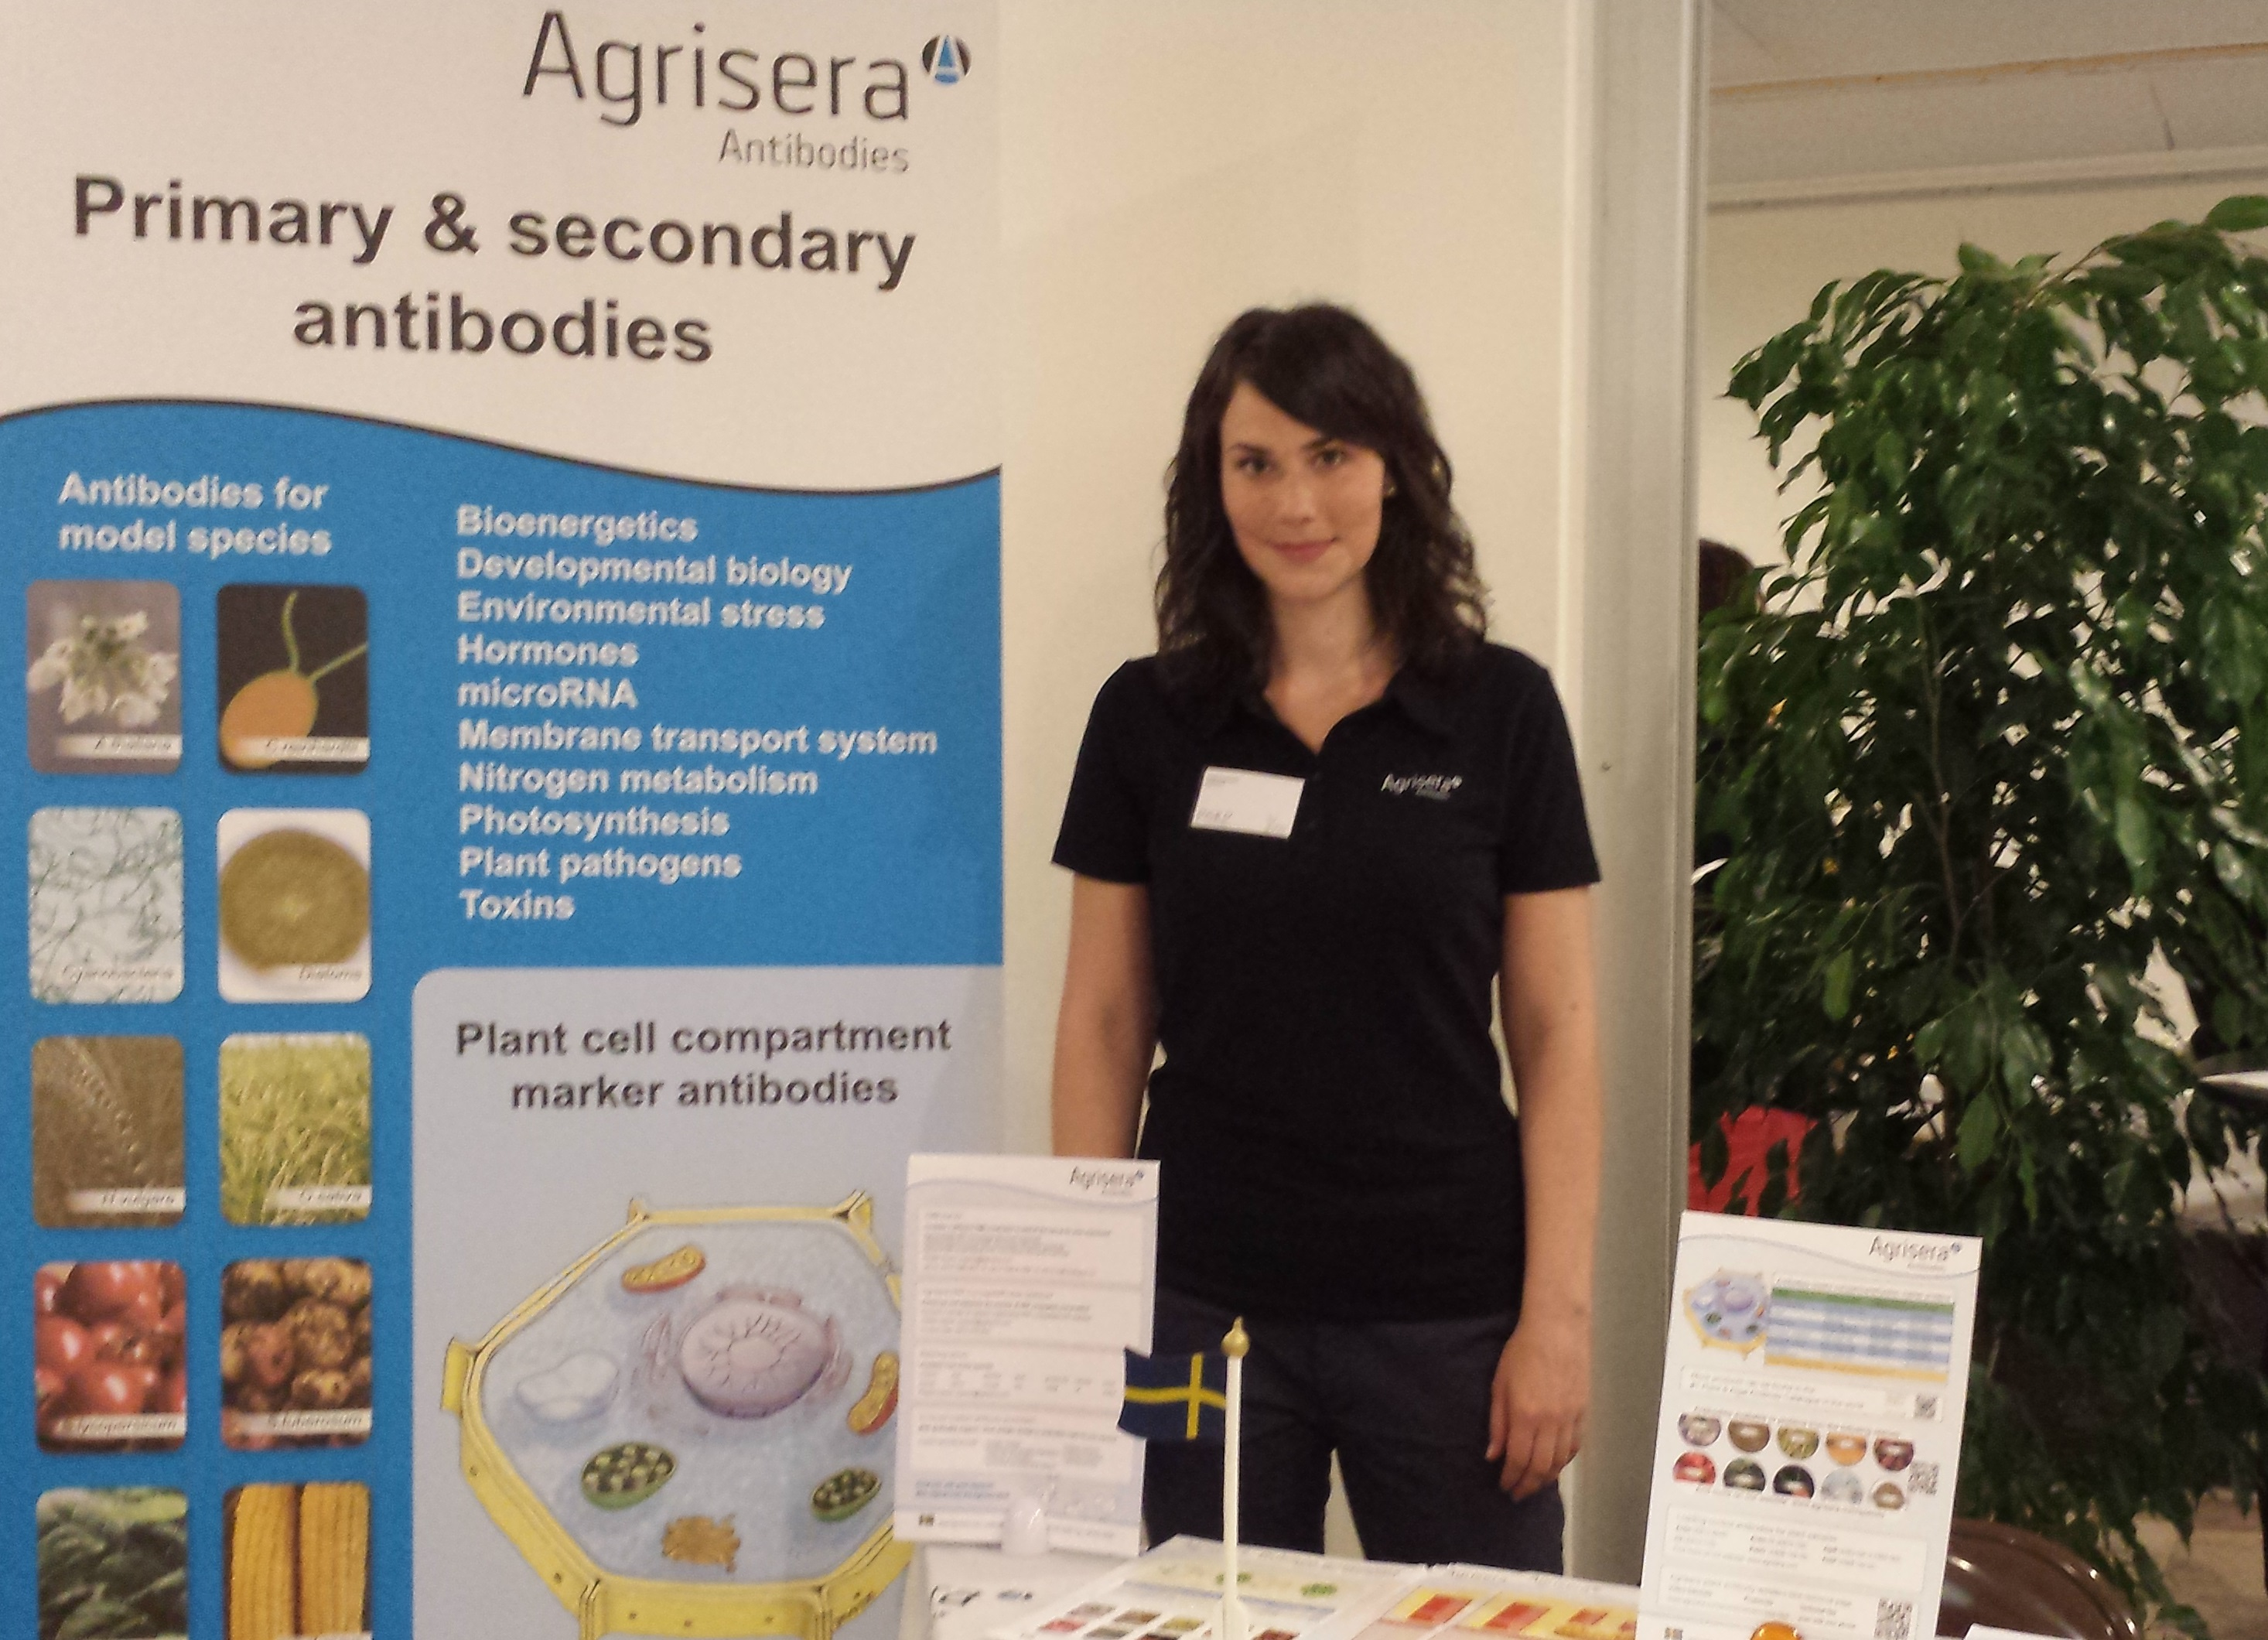 Agrisera at PGRP Paris, France